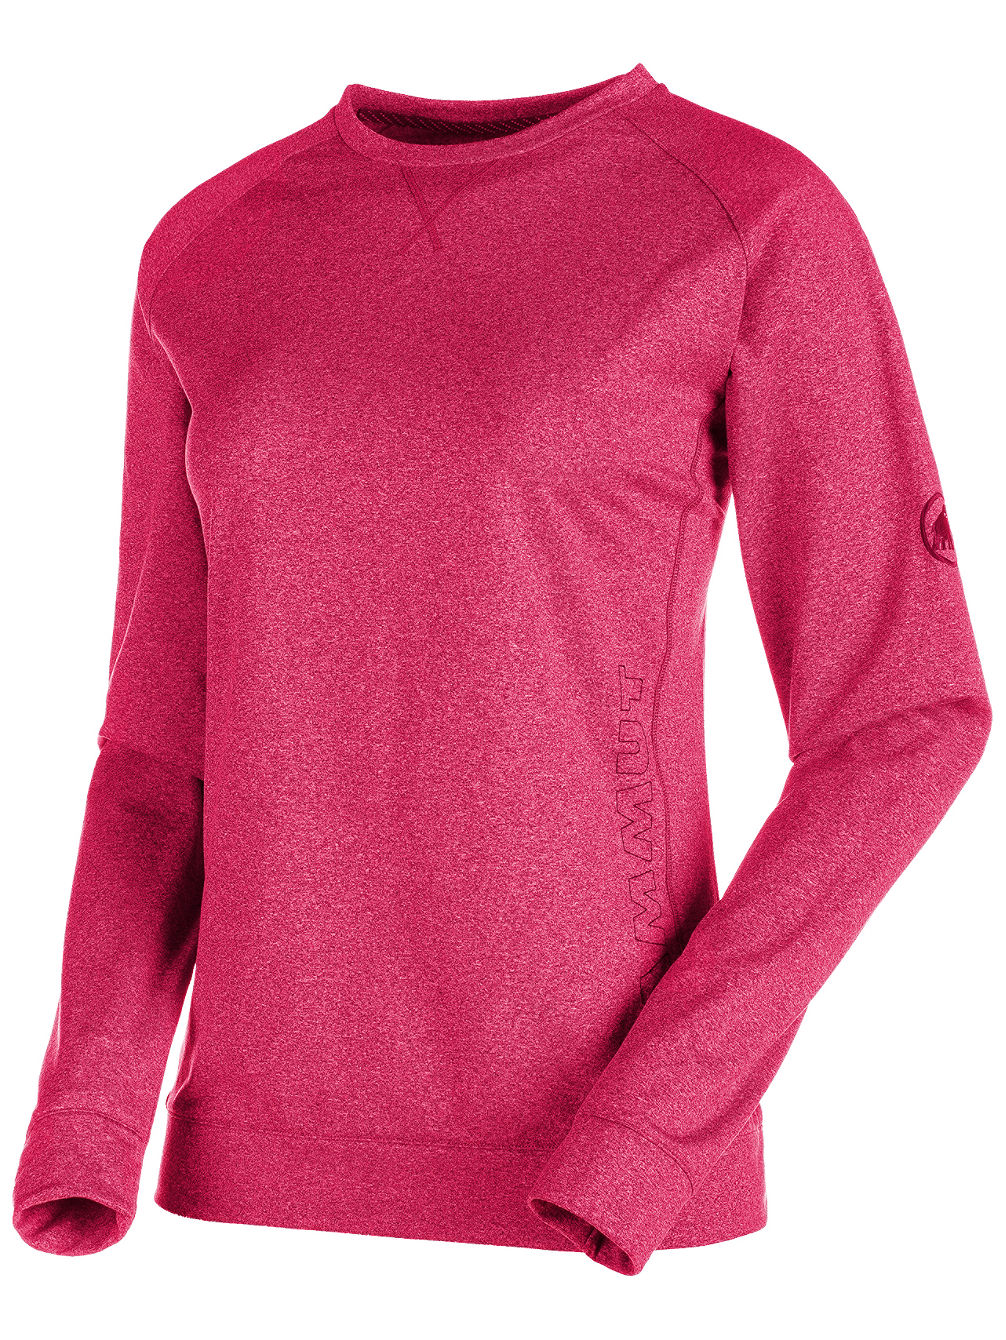 Luina Ml Fleece Pullover